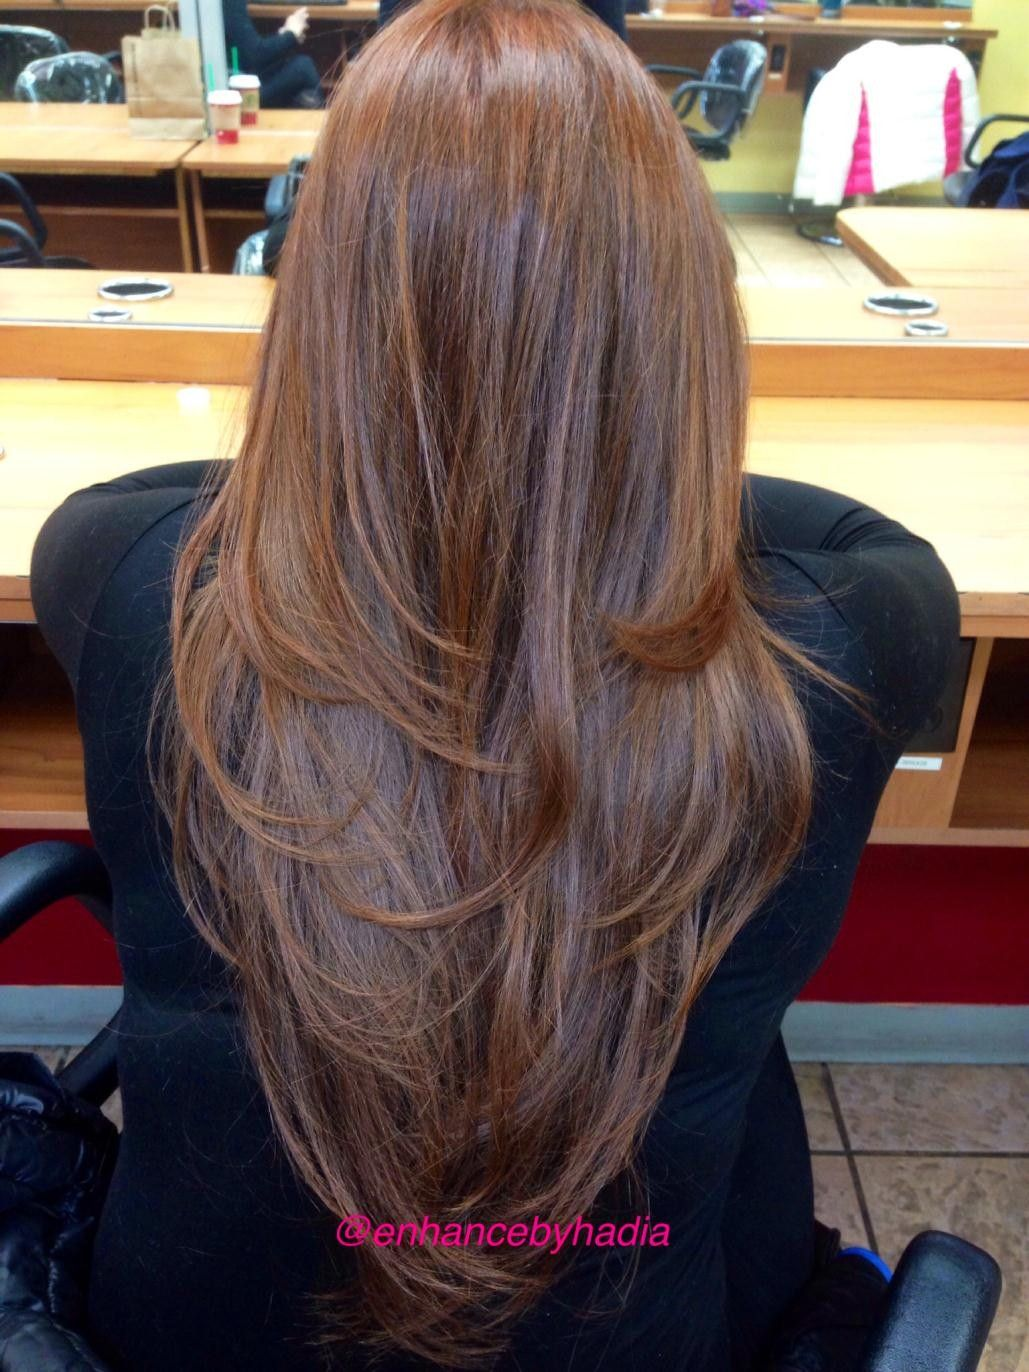 Long Hair With Layers Back View Haircuts Gallery Pinterest